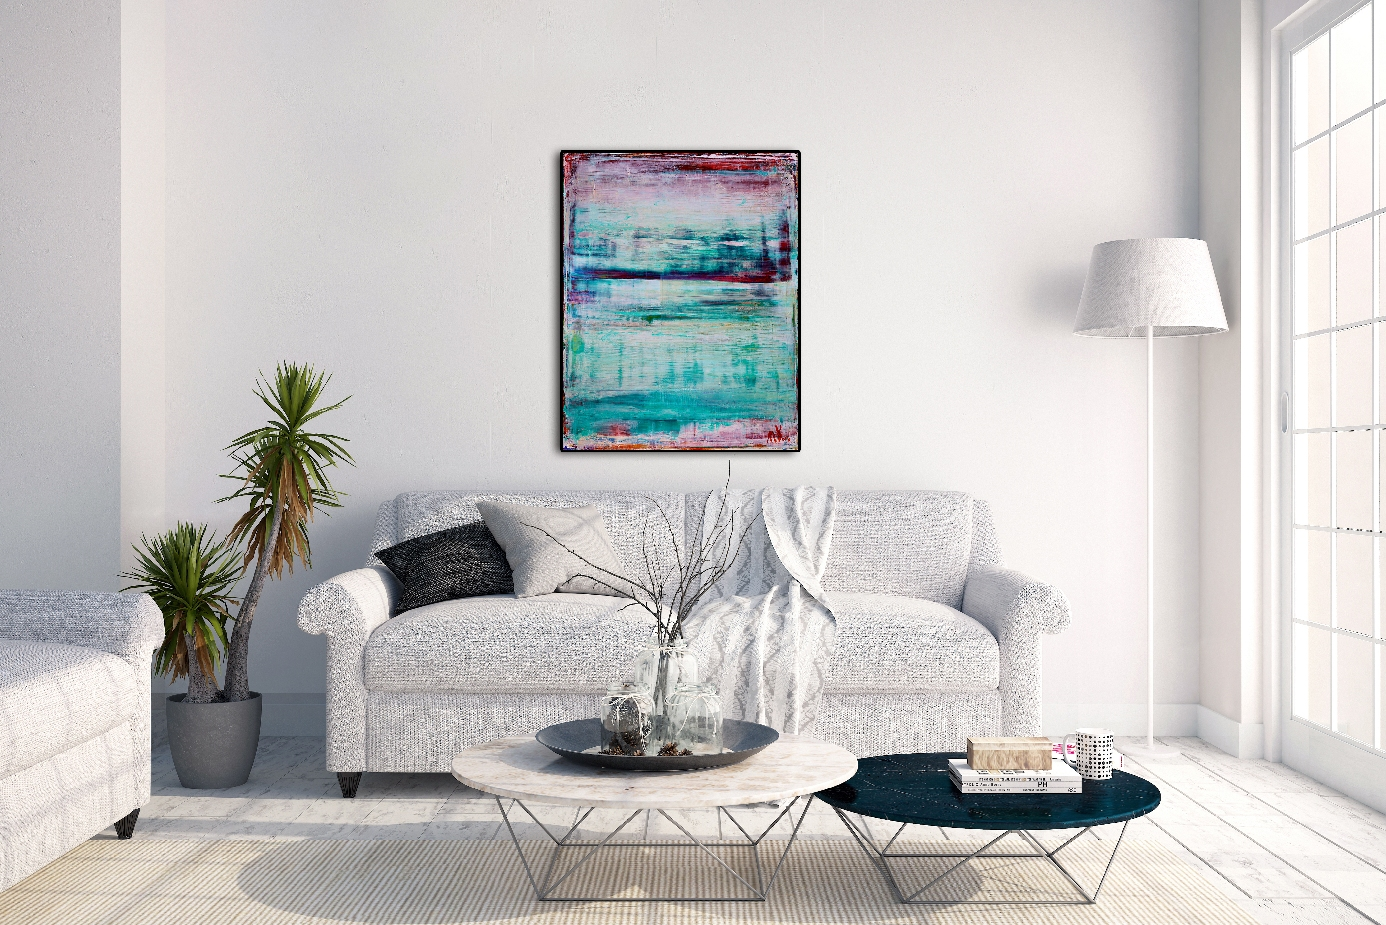 Cielo Blanco by abstract painter Nestor Toro in L.A.